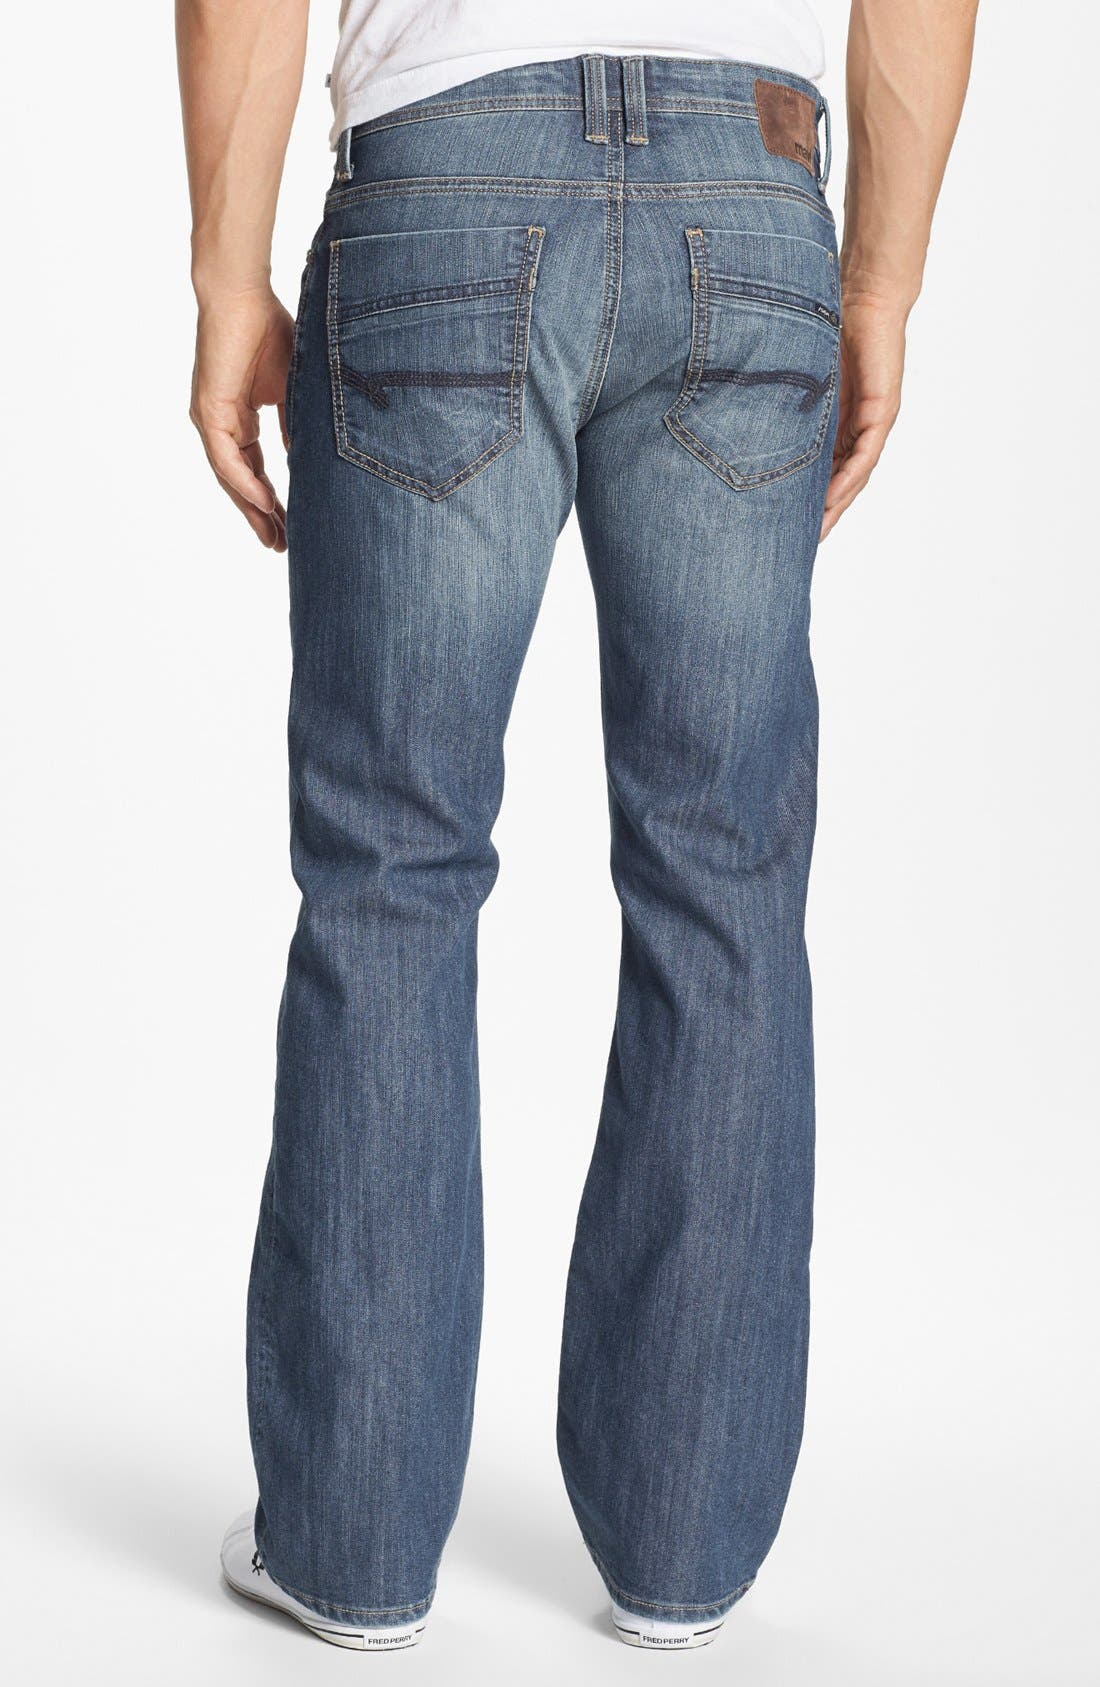 Main Image - Mavi Jeans 'Josh' Bootcut Jeans (Brushed American Comfort) (Online Only)